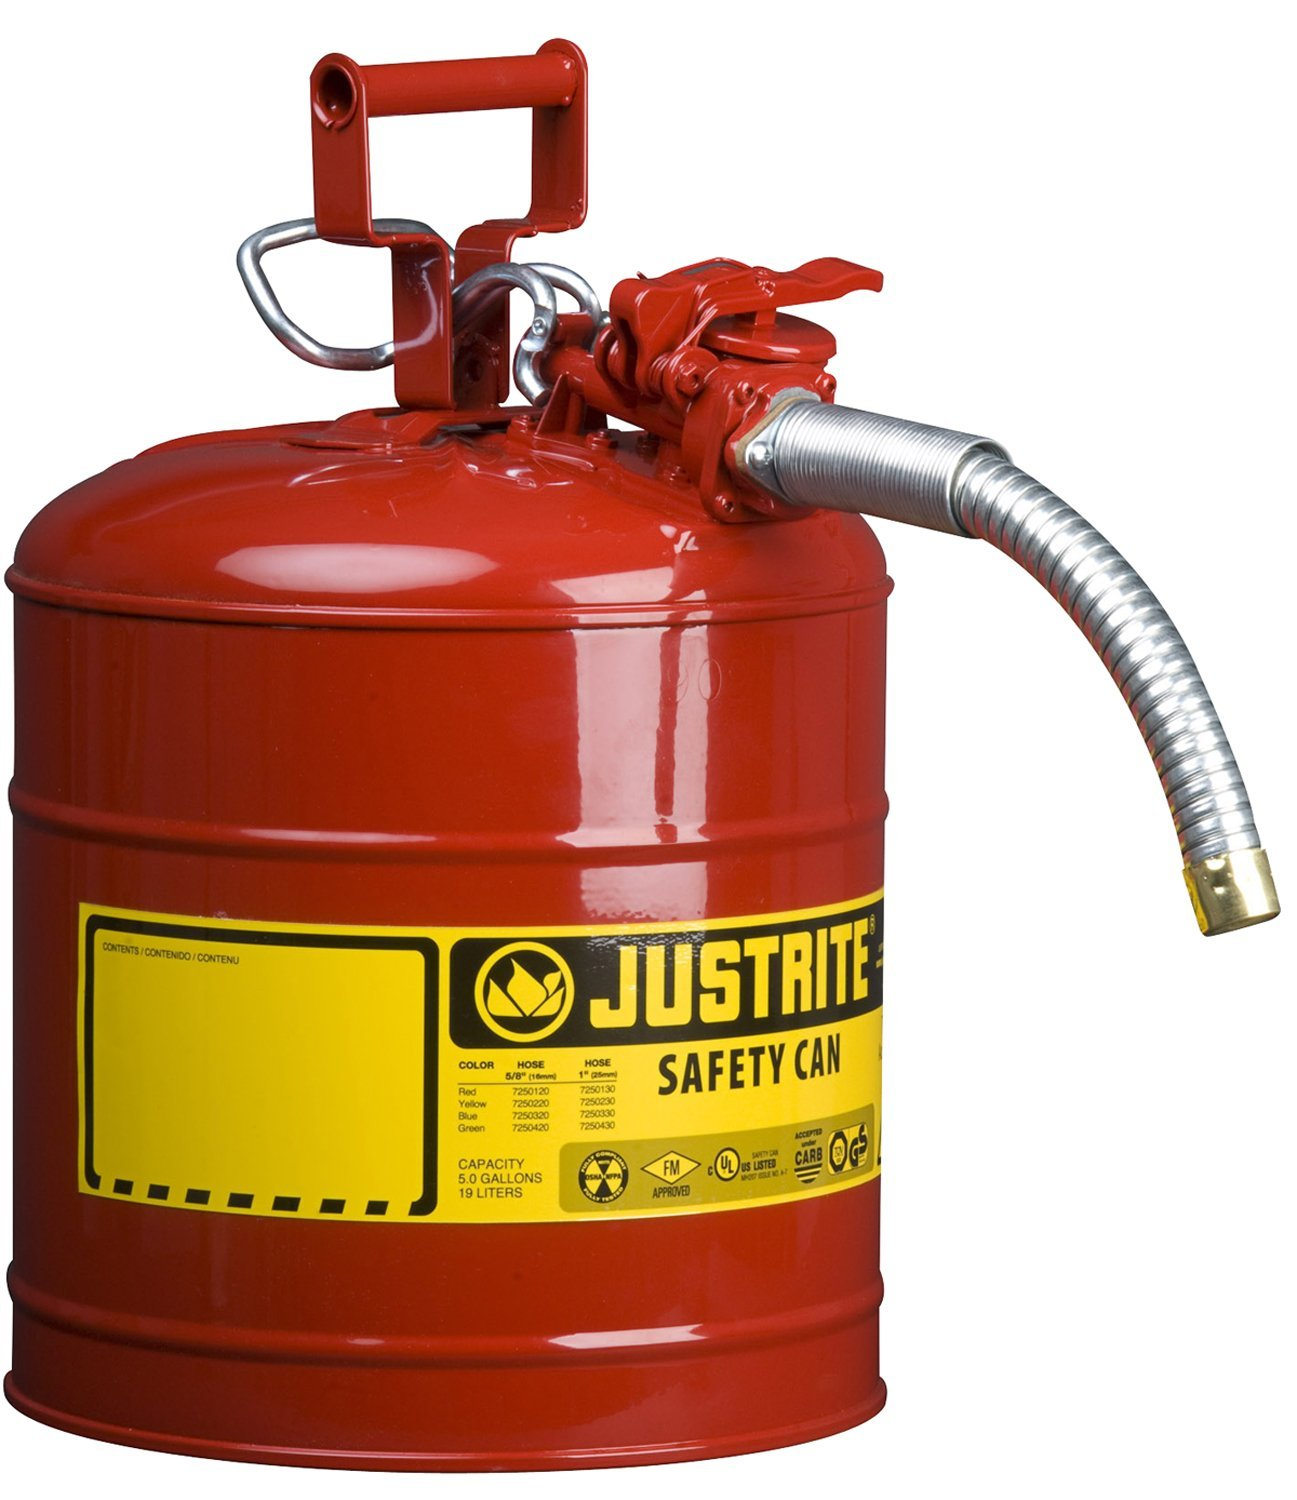 Justrite 5 Gallon Accuflow Safety Gas Can